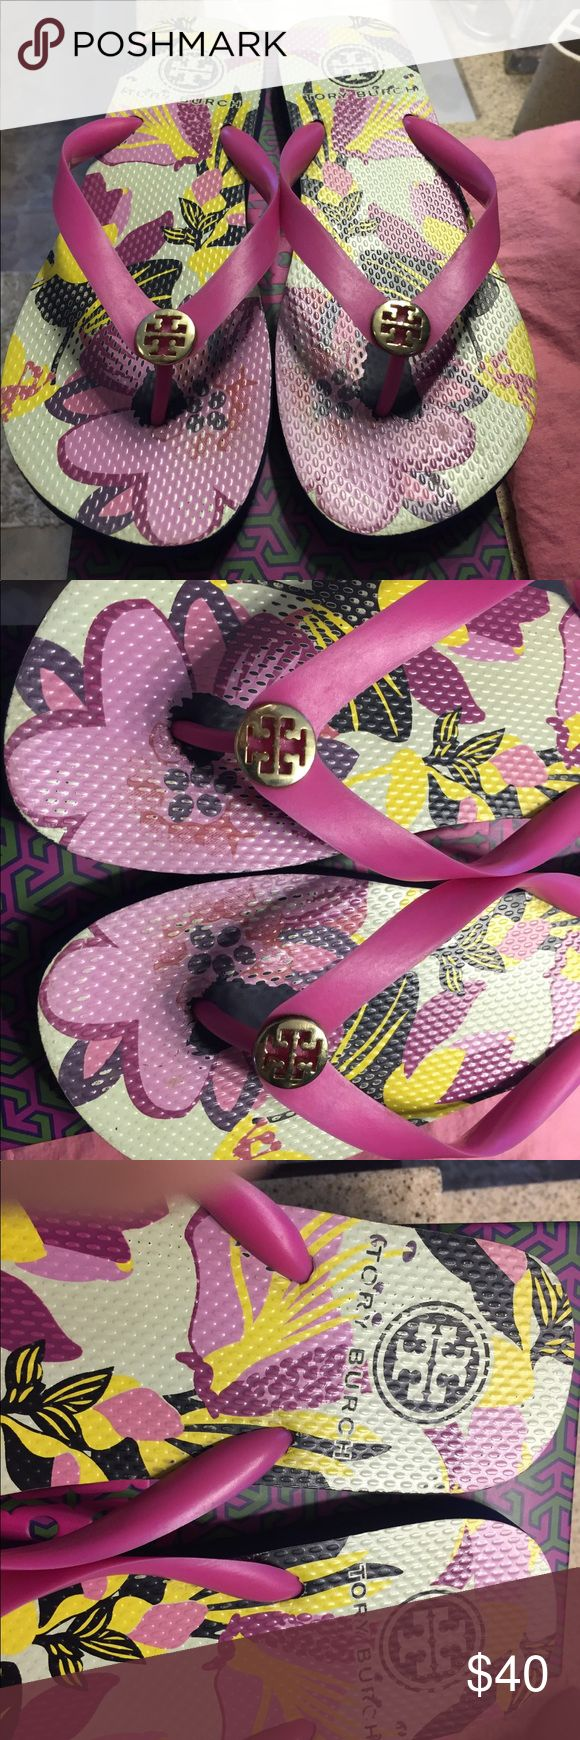 Excellent condition Tory Burch flip flops! Excellent condition Tory Burch flip flops! Size 9 and work only once these flip flops are a must have for the summer and fall! Gold Tory logo on the front and T symbol cover the bottom of the shoes so you never go out of style! Happy shopping xoxo Tory Burch Shoes Sandals